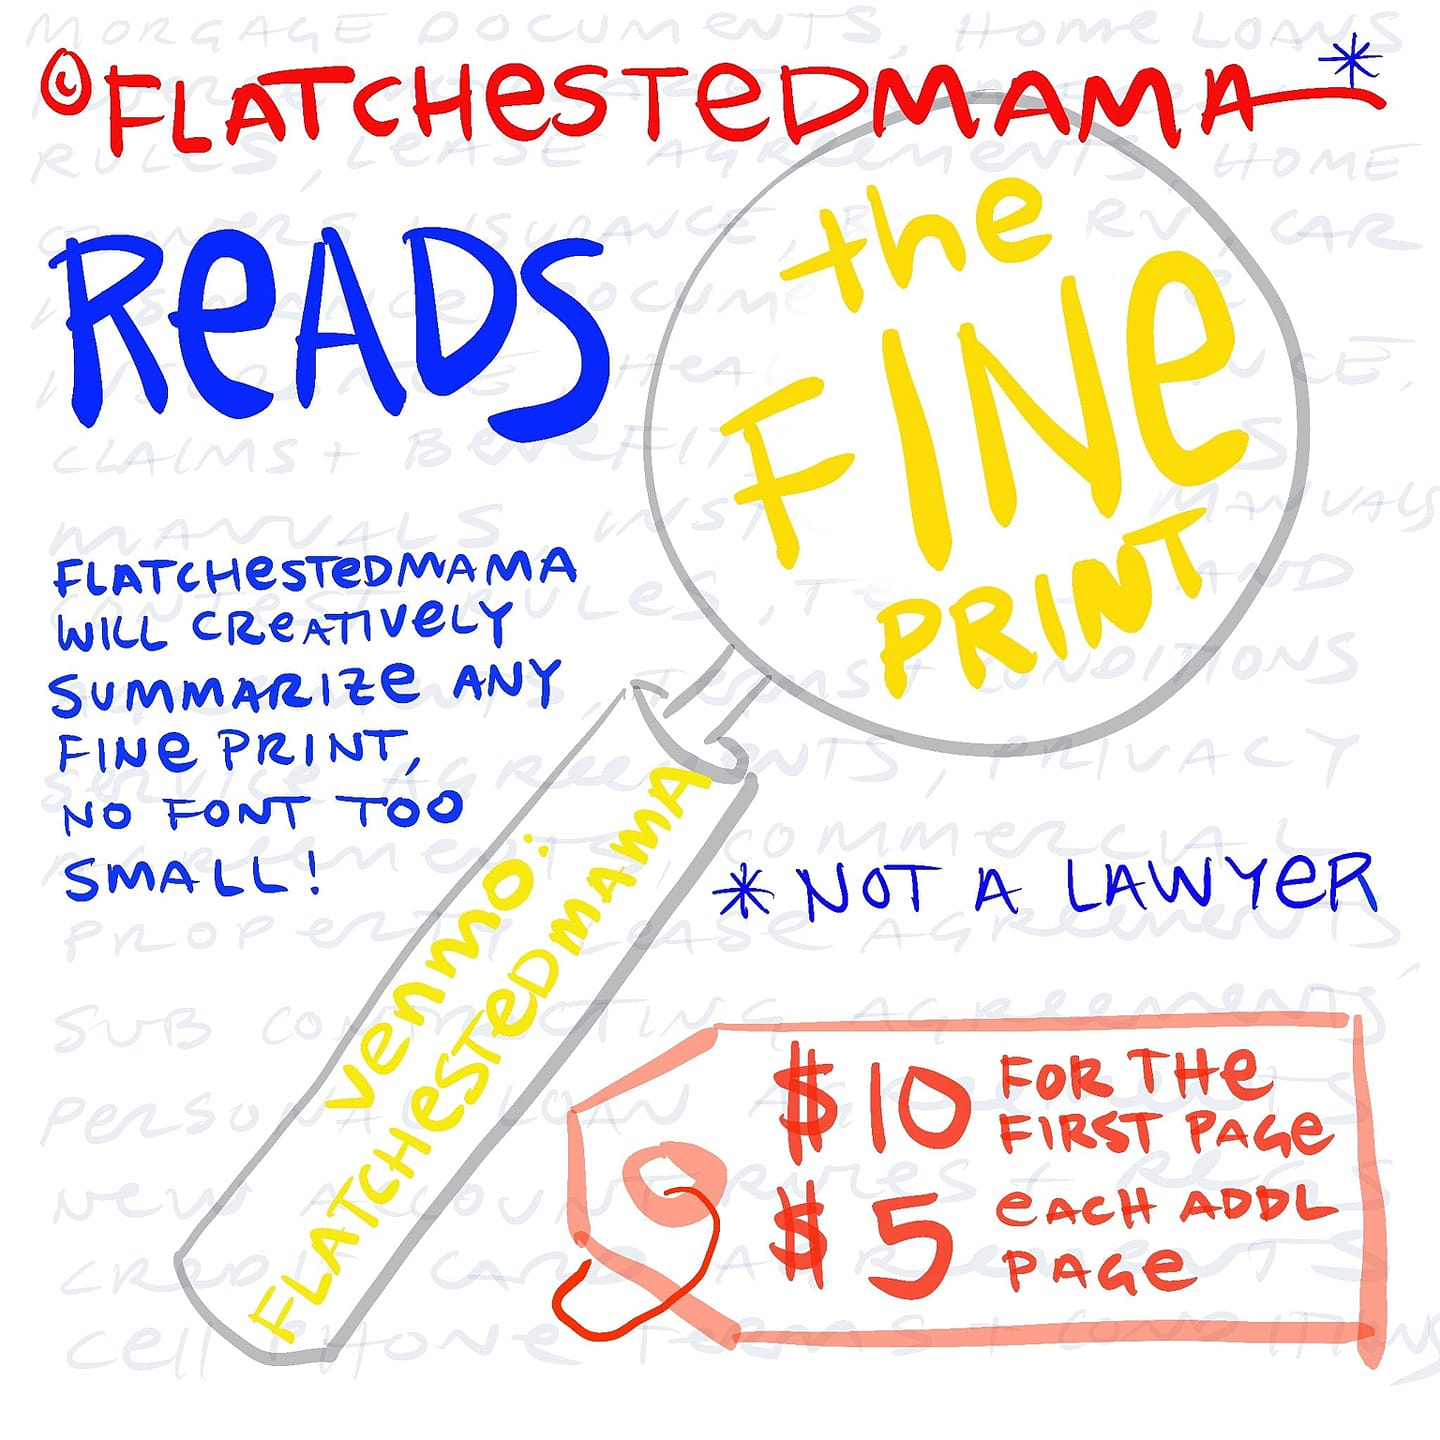 a hand drawn magnifying glass and price tag detail Flatchestedmama's new offering of reading the fine print